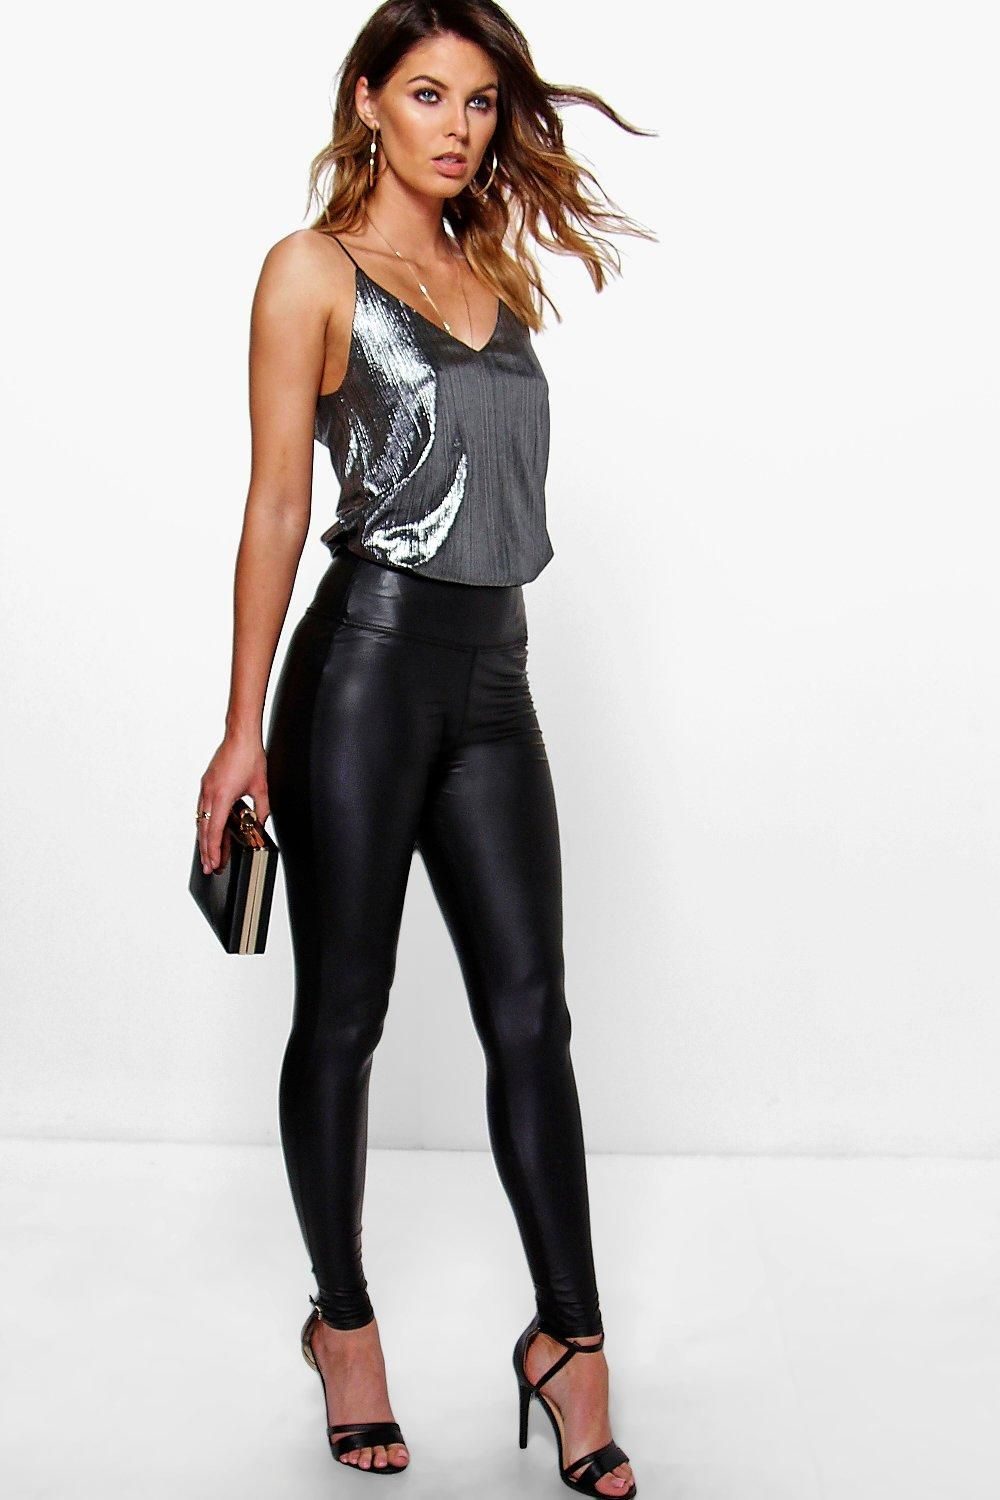 Trendy Wet Look Leggings